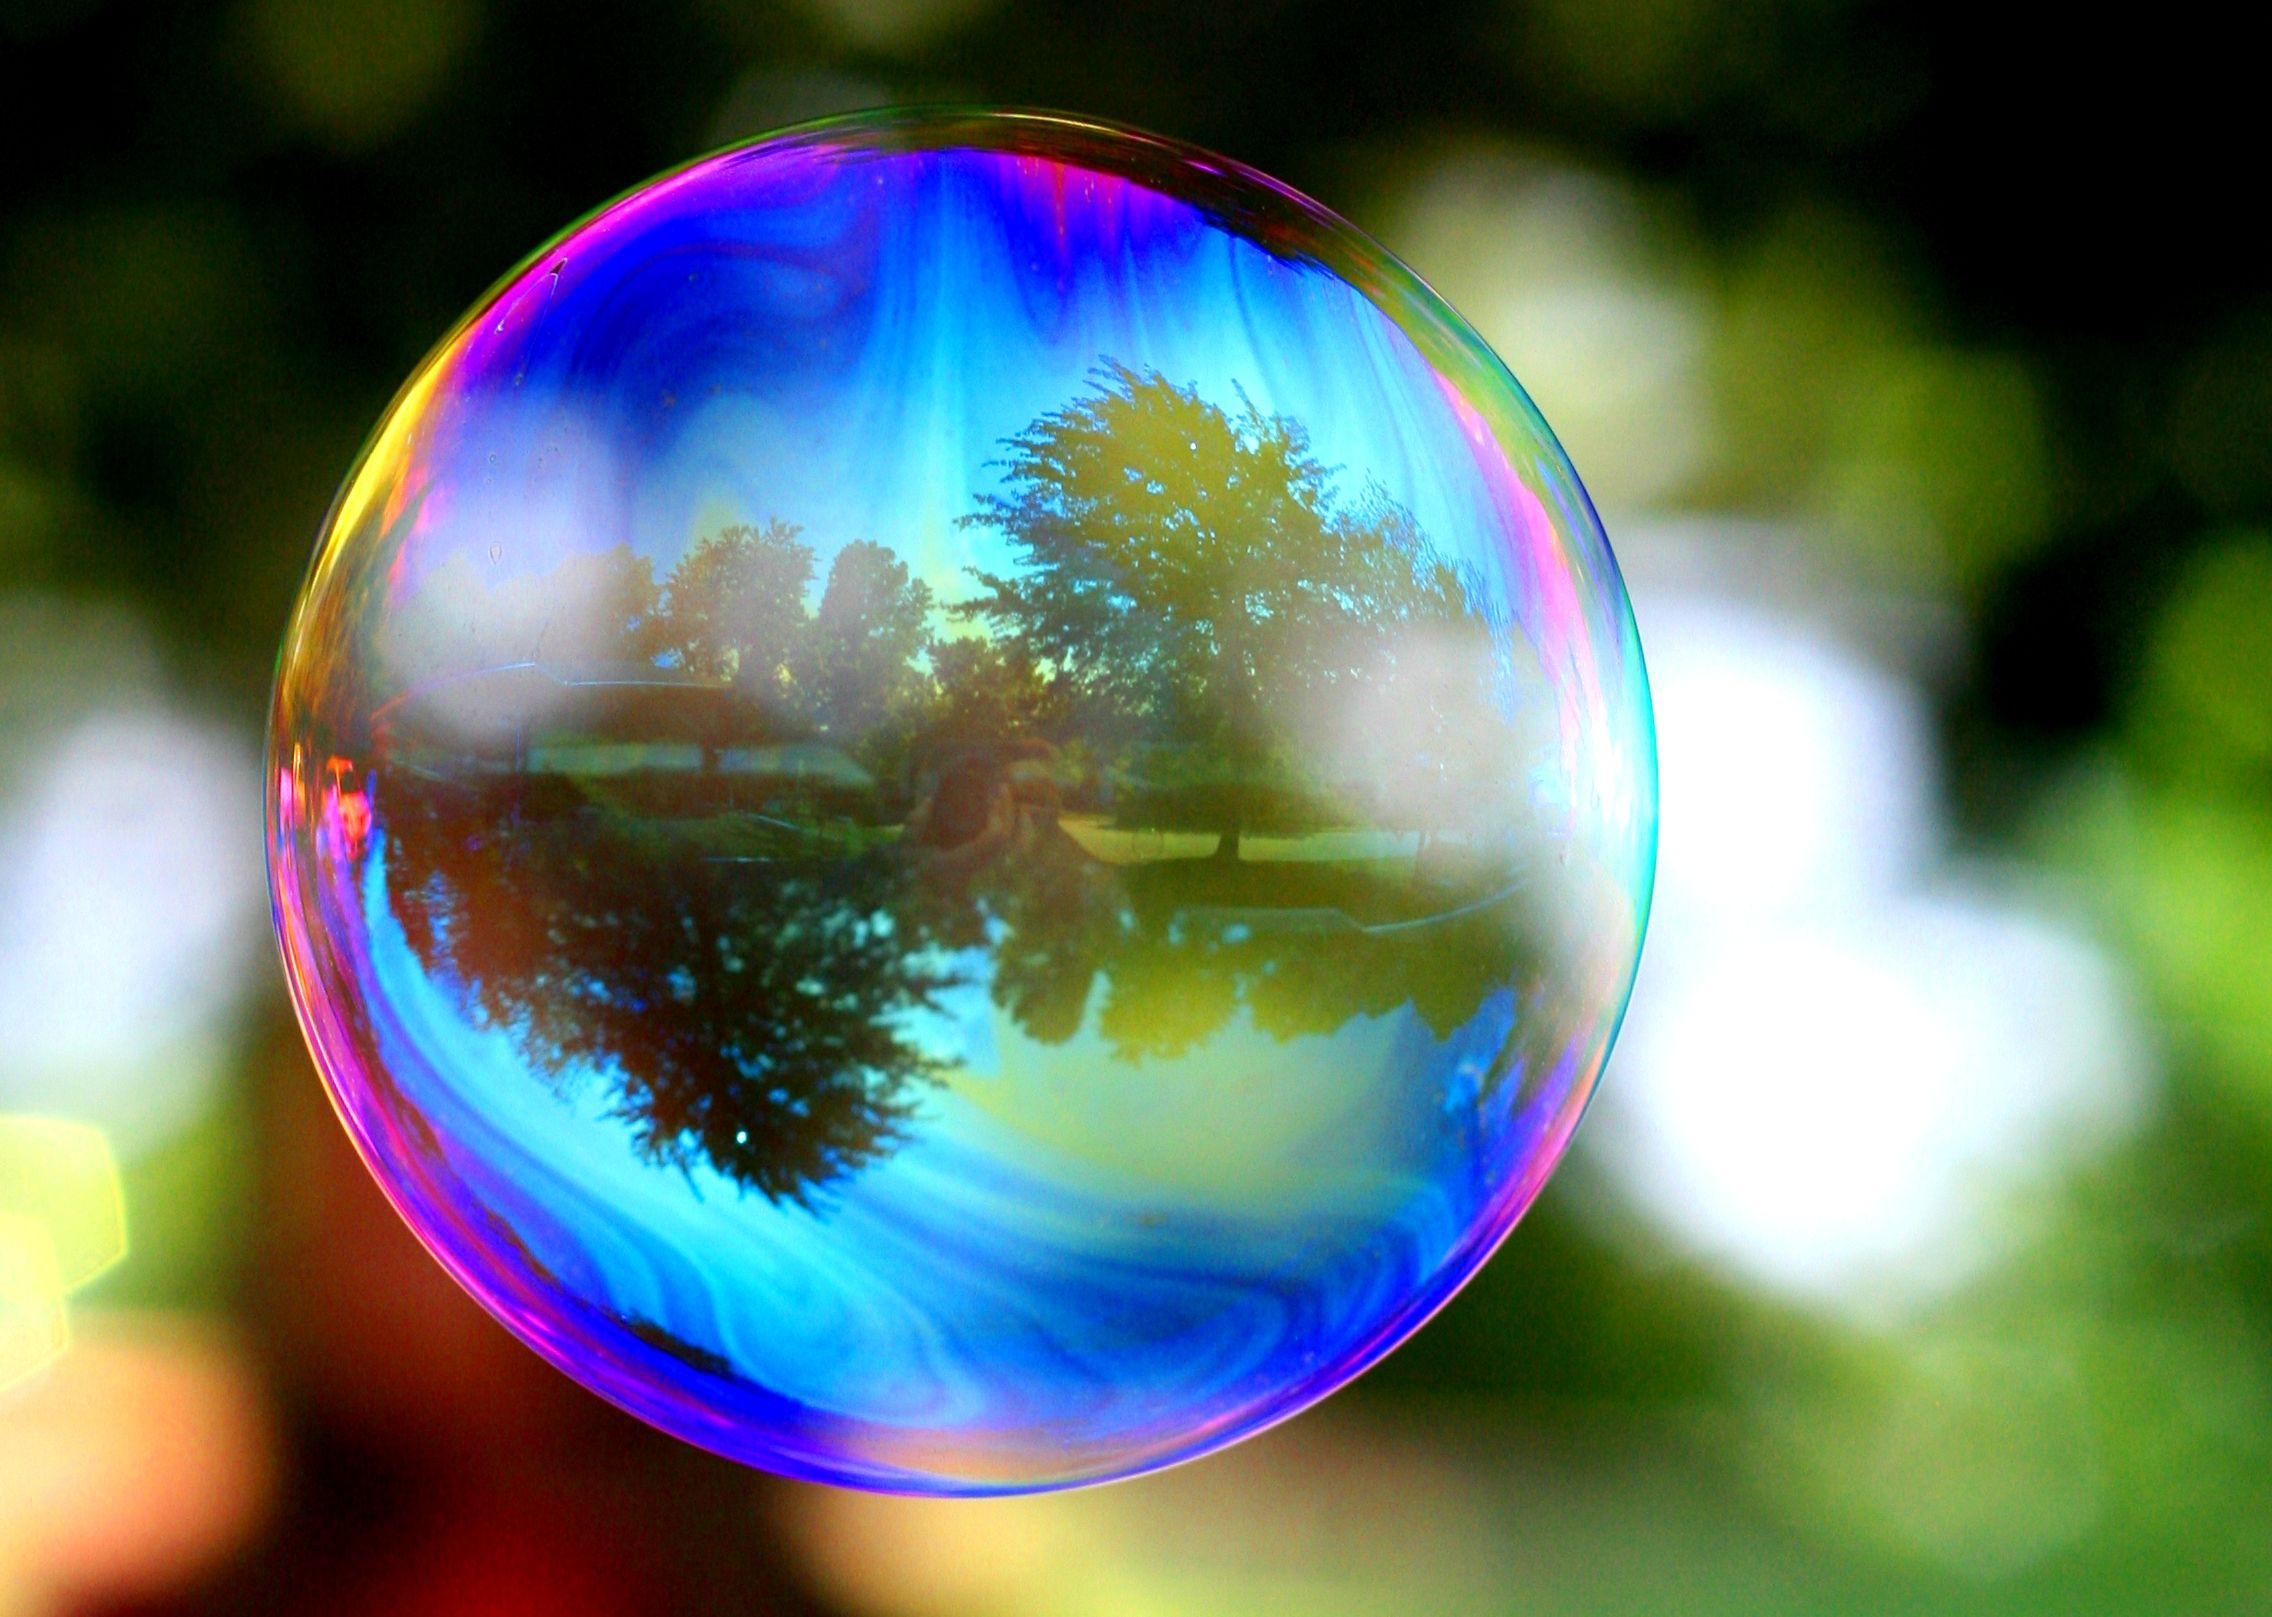 425 best for the love of bubbles images on pinterest | soap